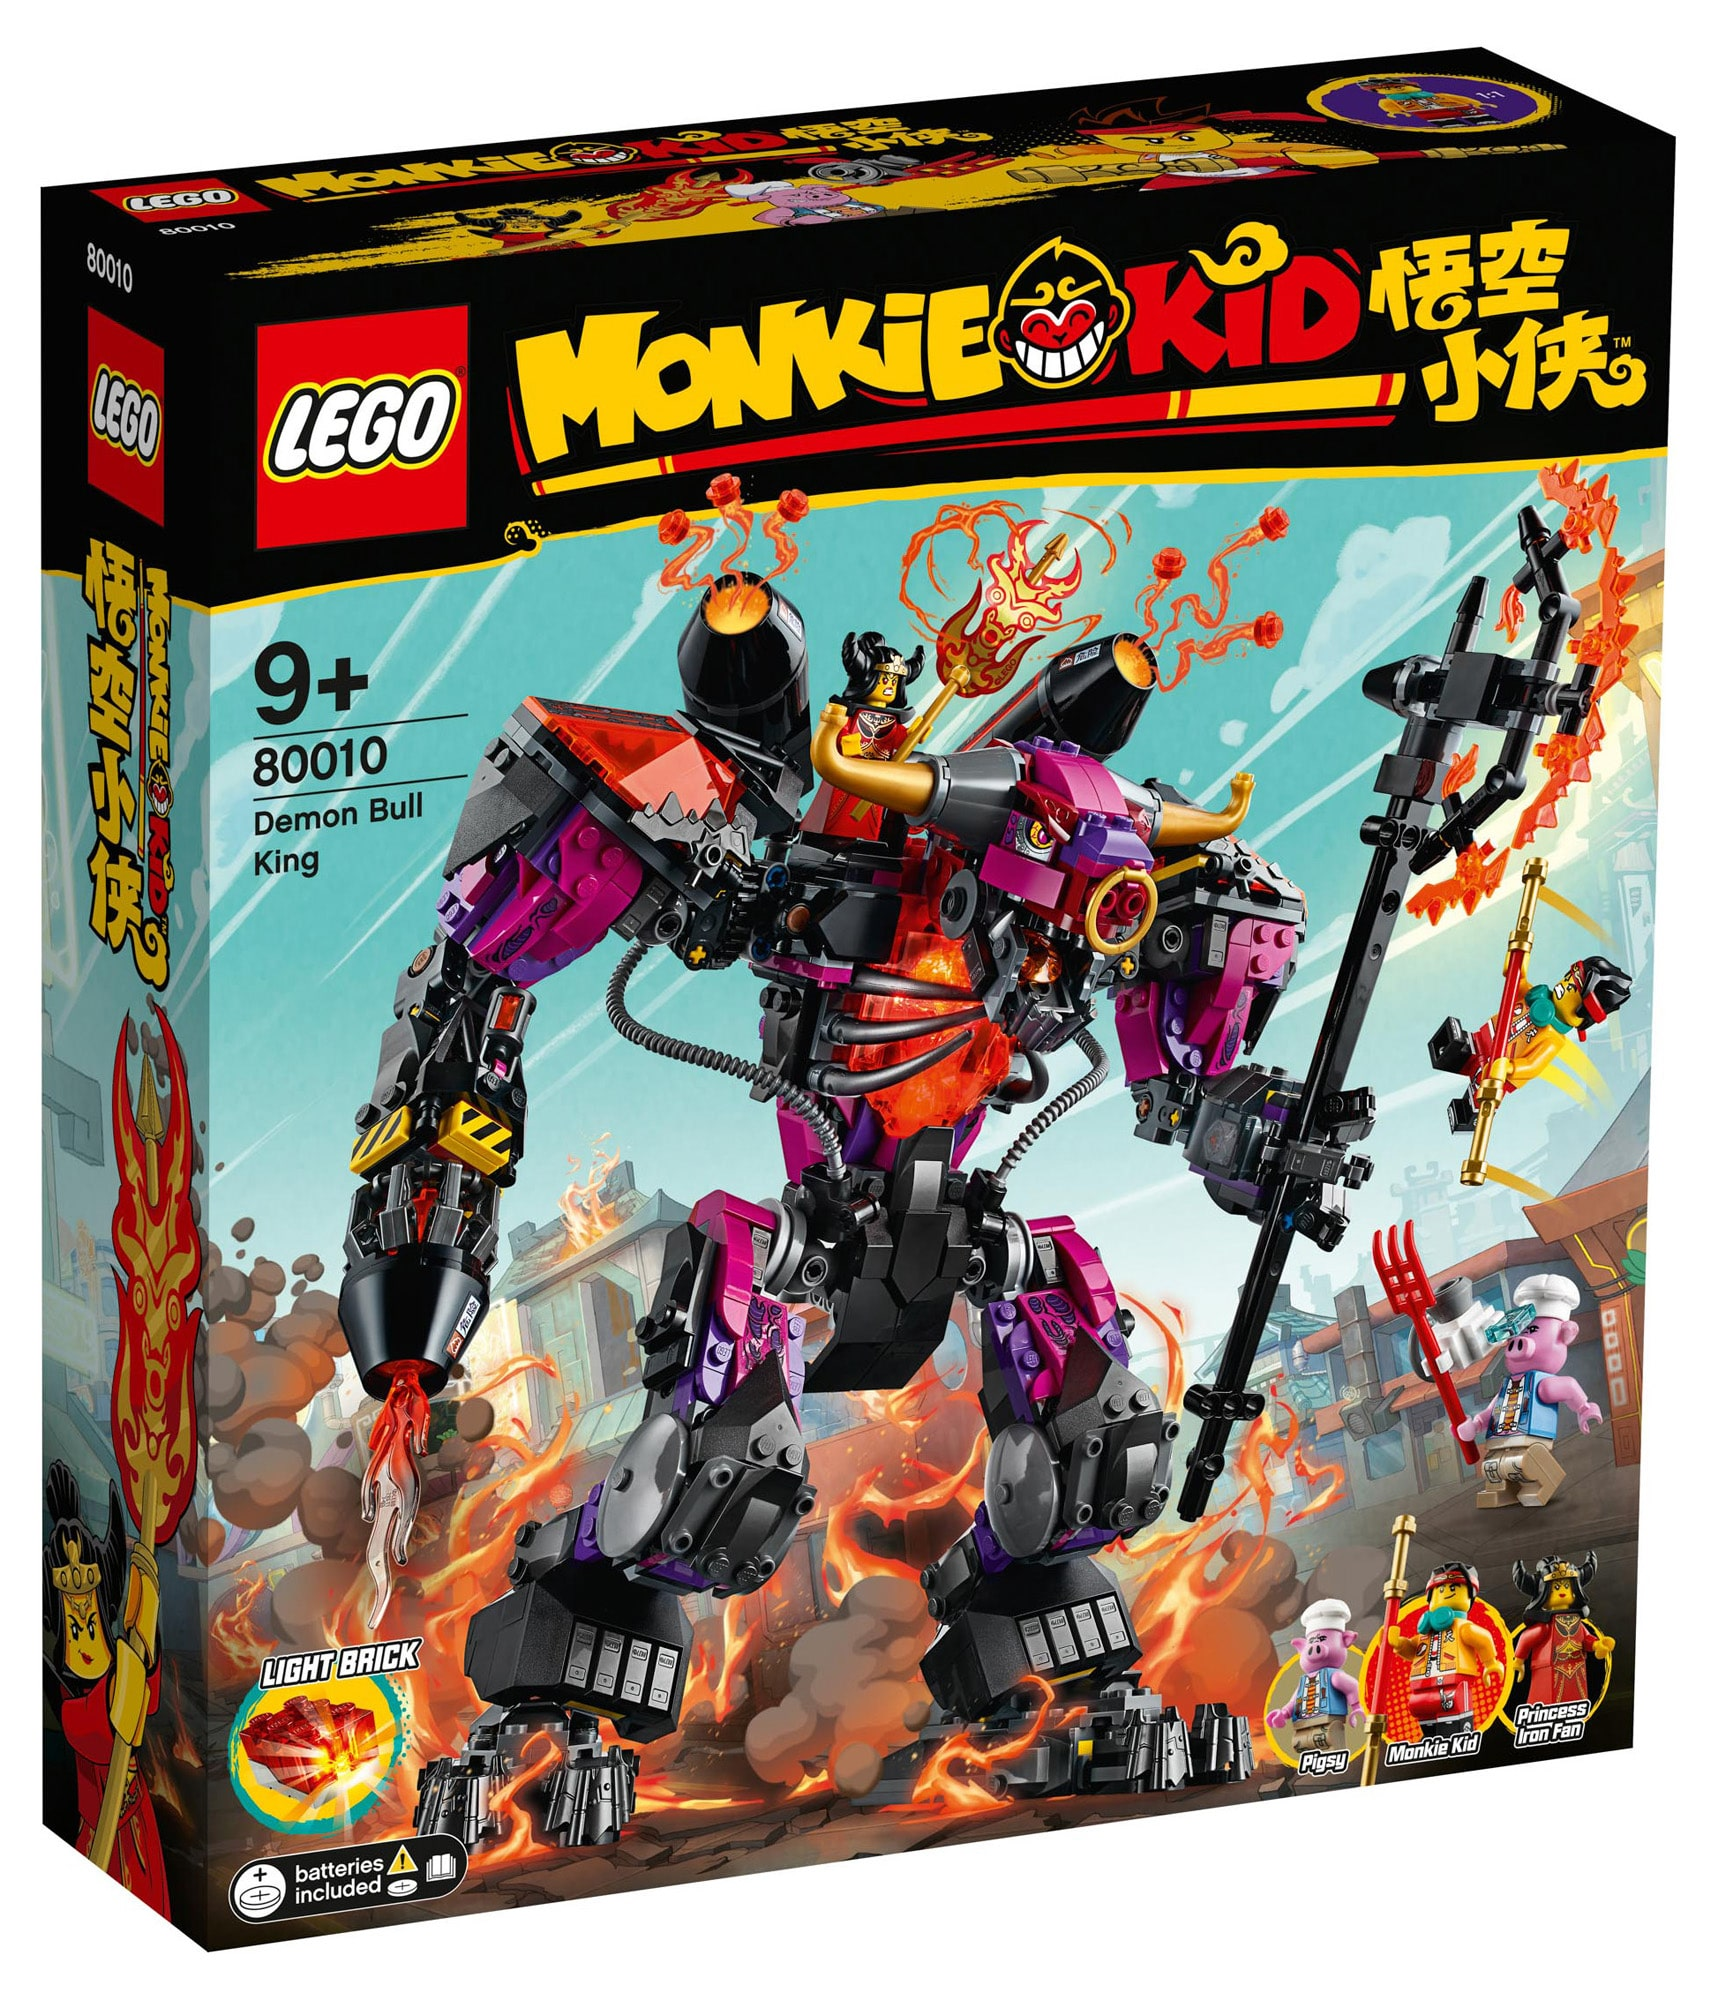 LEGO Monkie Kid 80010 Demon Bull King